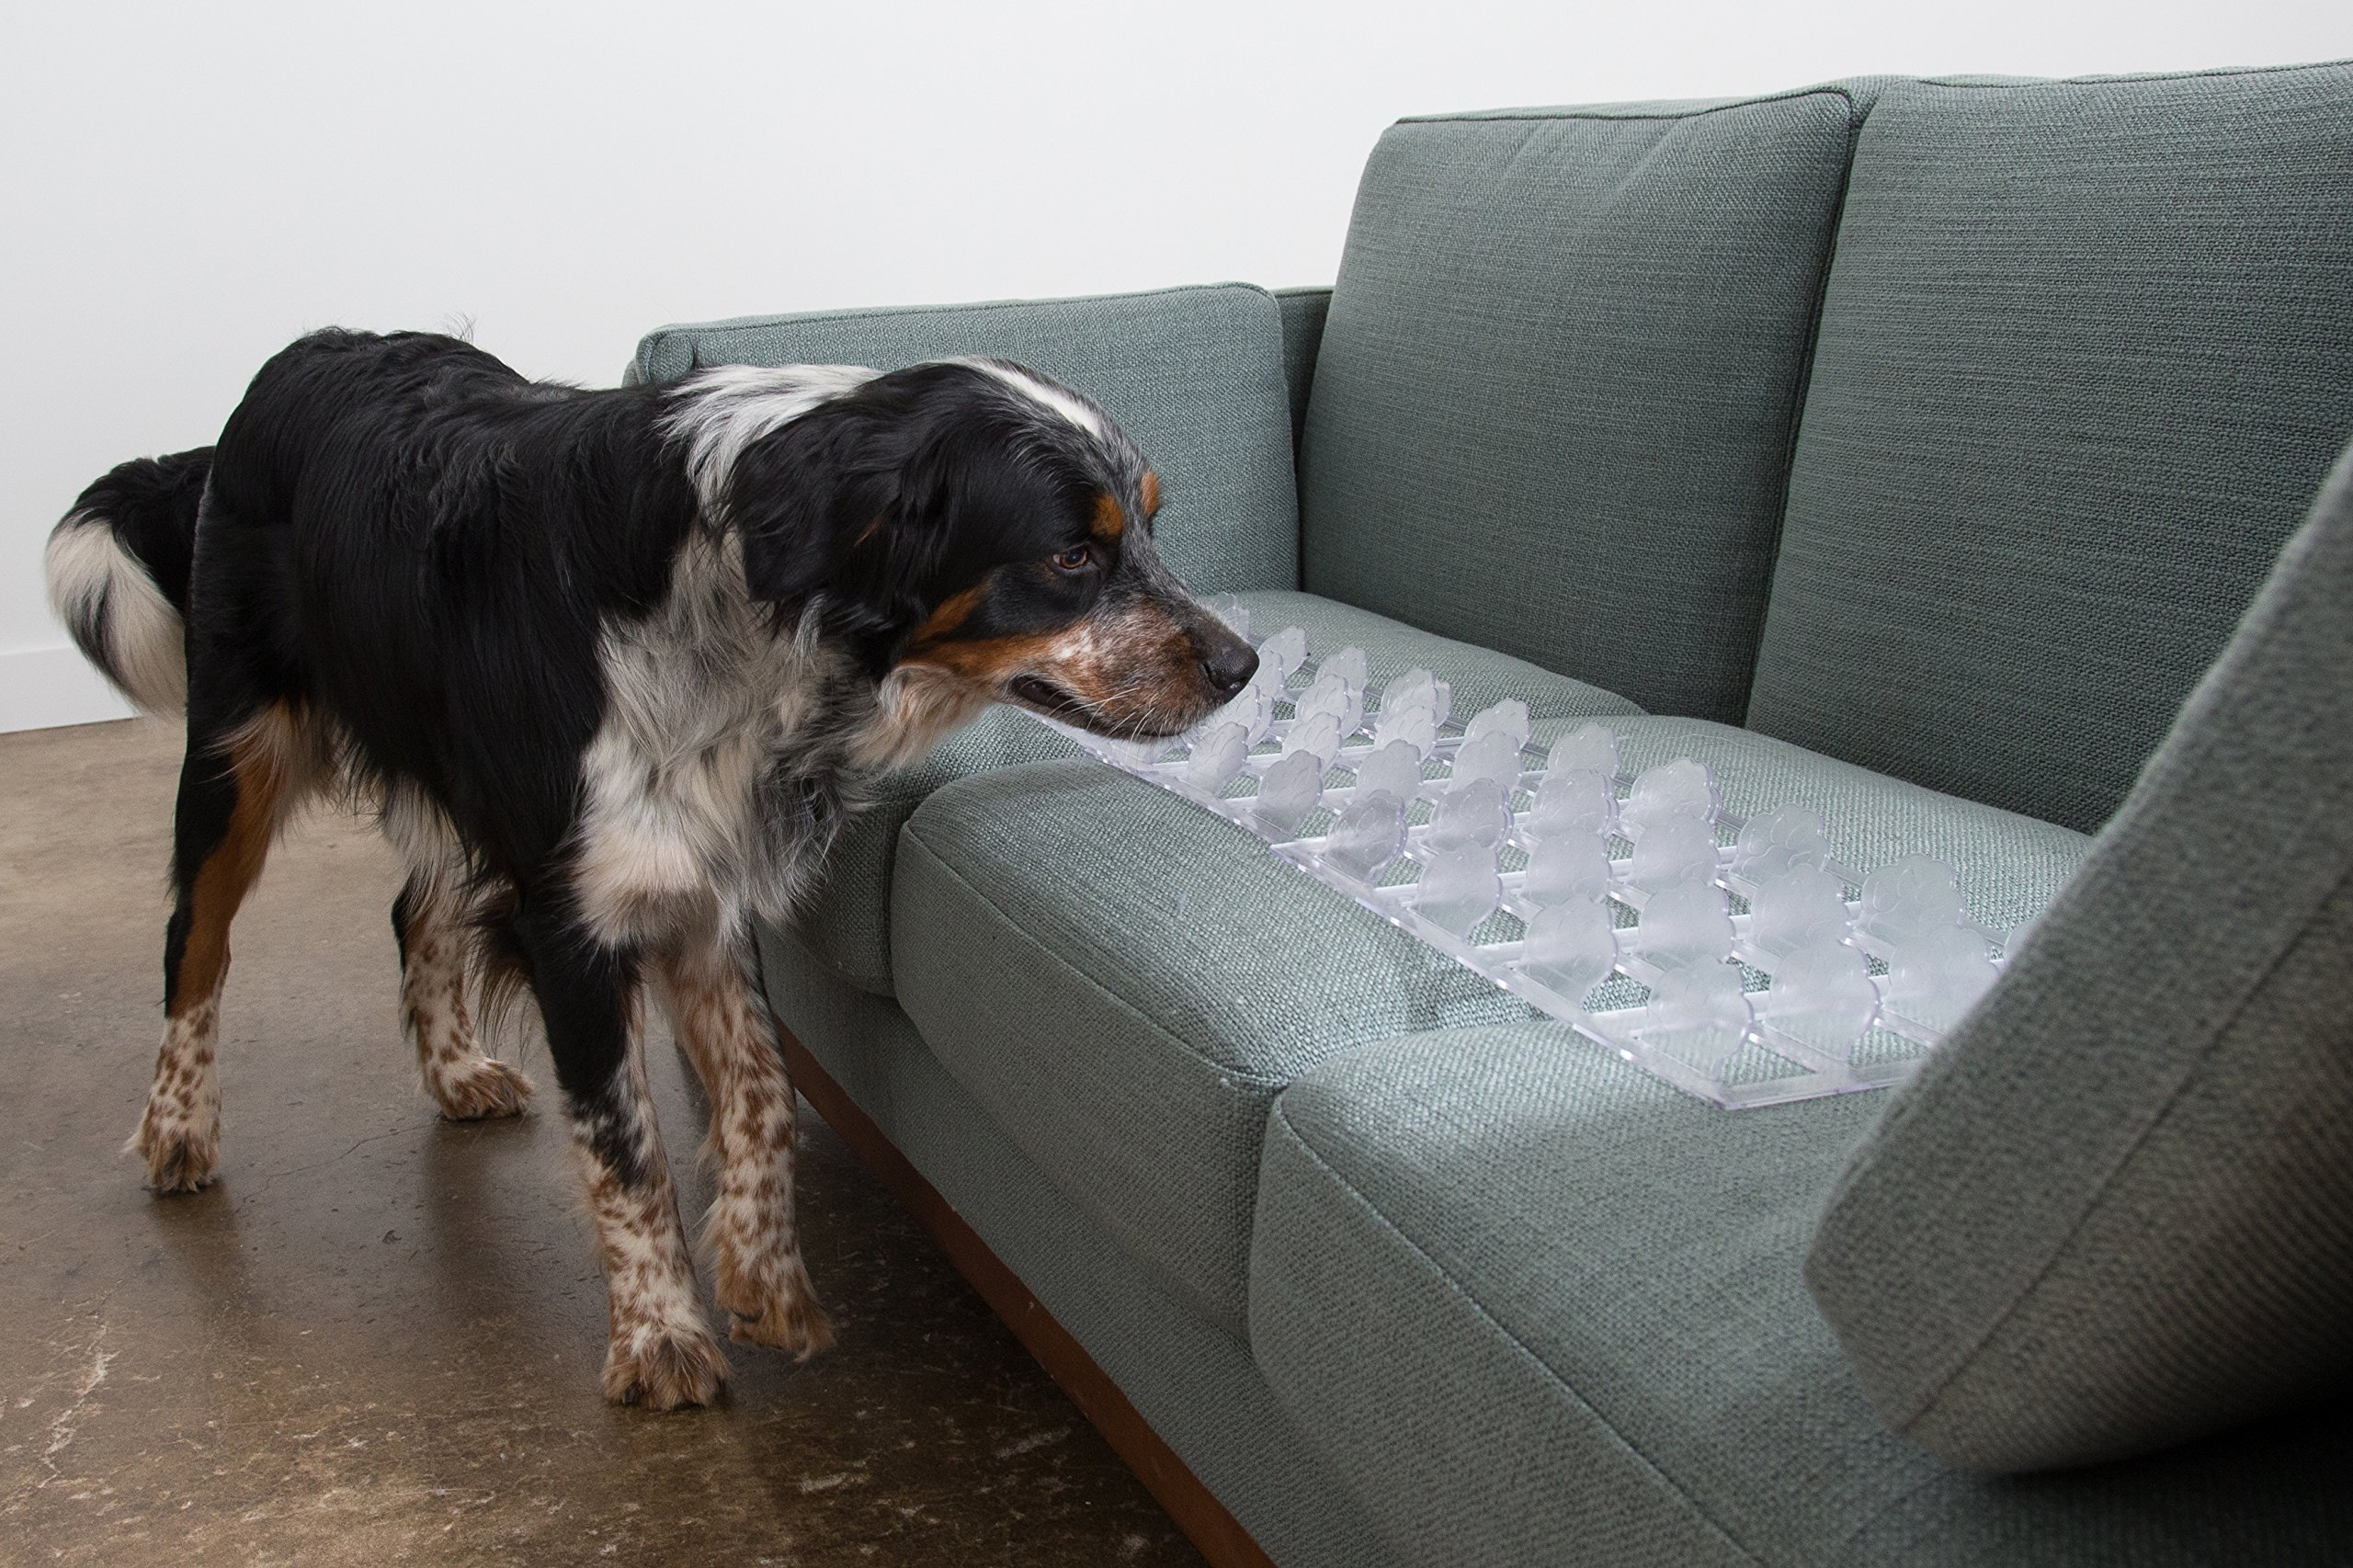 Couch Guard U0026 Furniture Protector   Keep Dogs U0026 Pets Safely Off Furniture  (Quantity 4 /CLEAR) Made In USA!